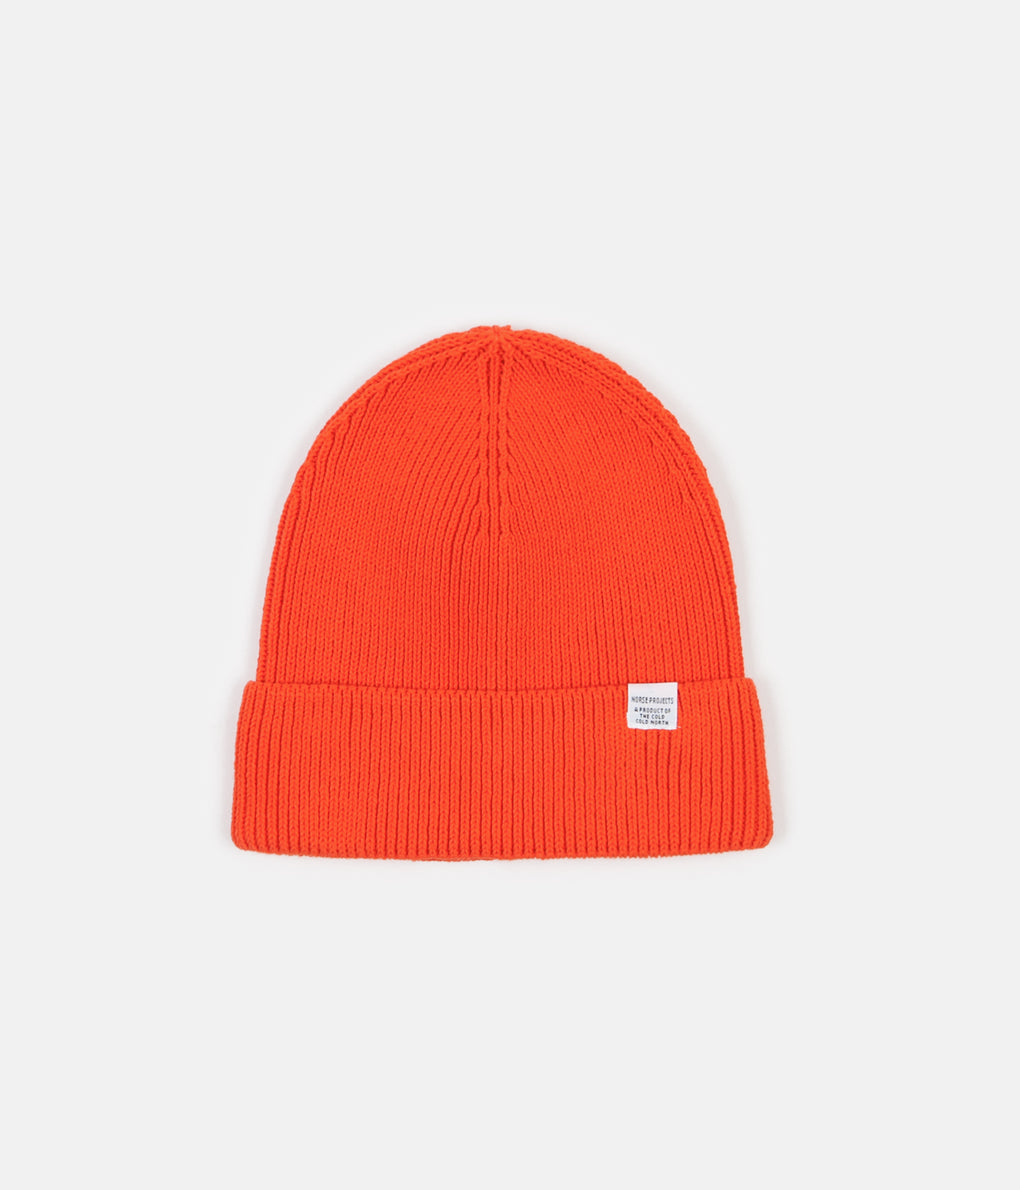 Norse Projects Norse Cotton Watch Beanie - Coral Red